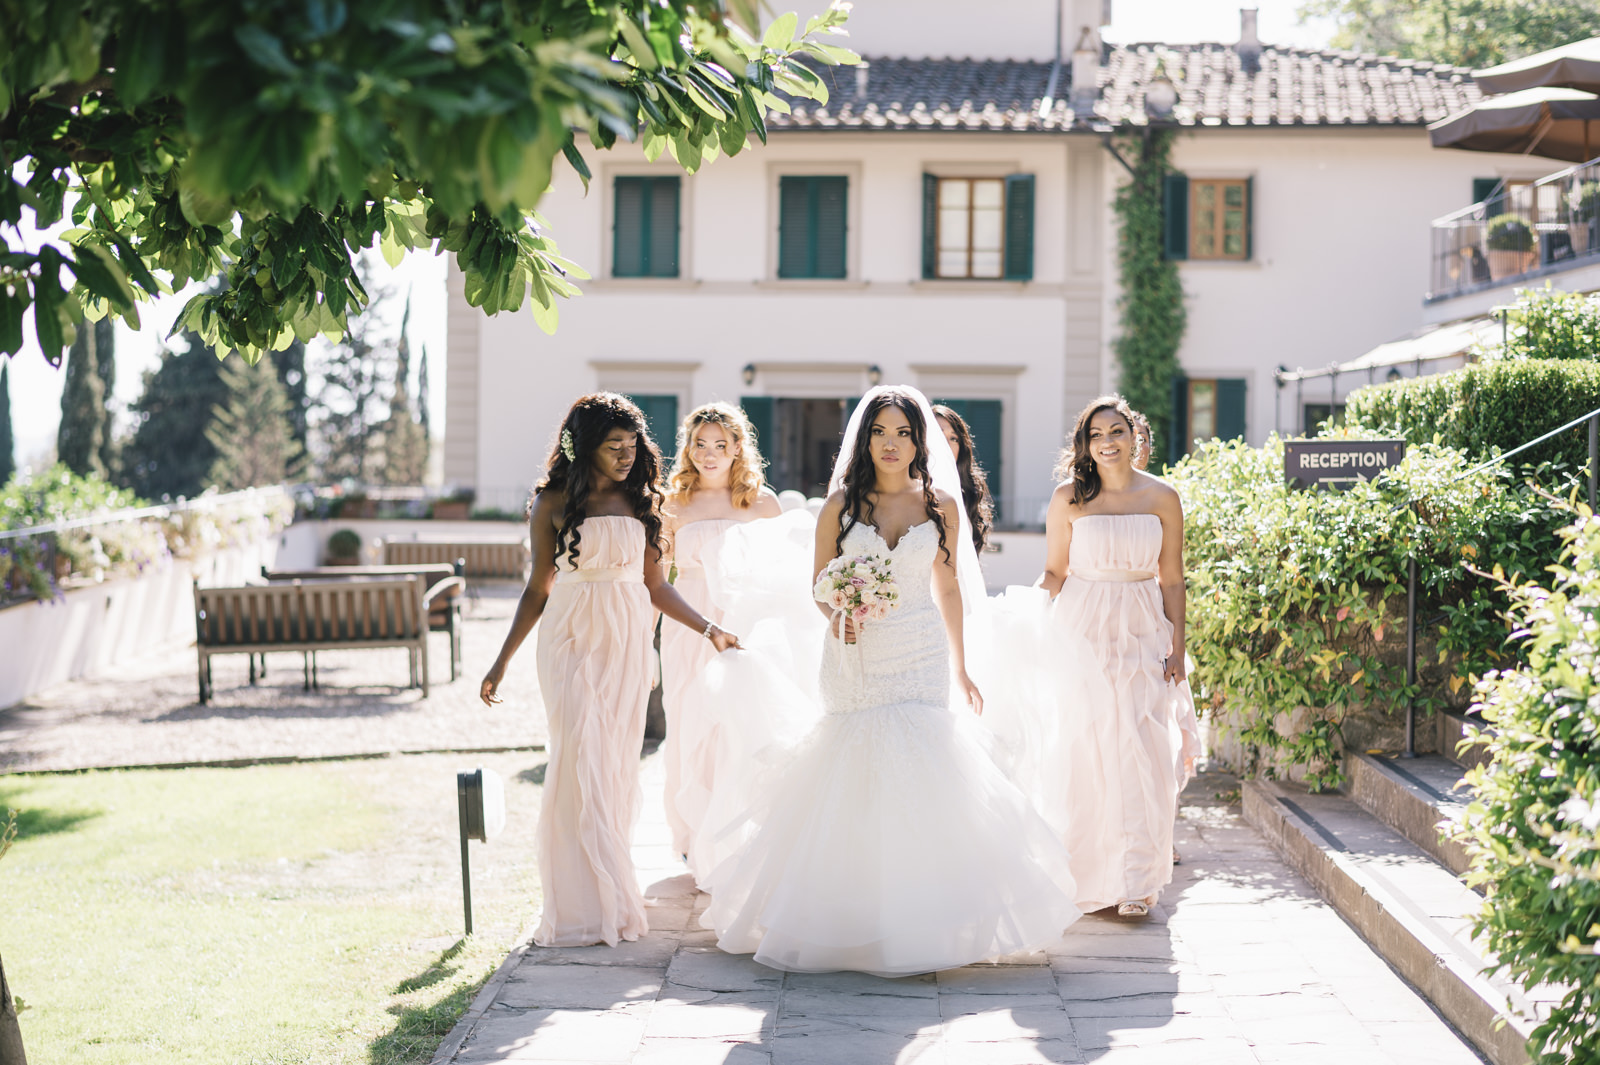 the bride and the bridesmaids walking